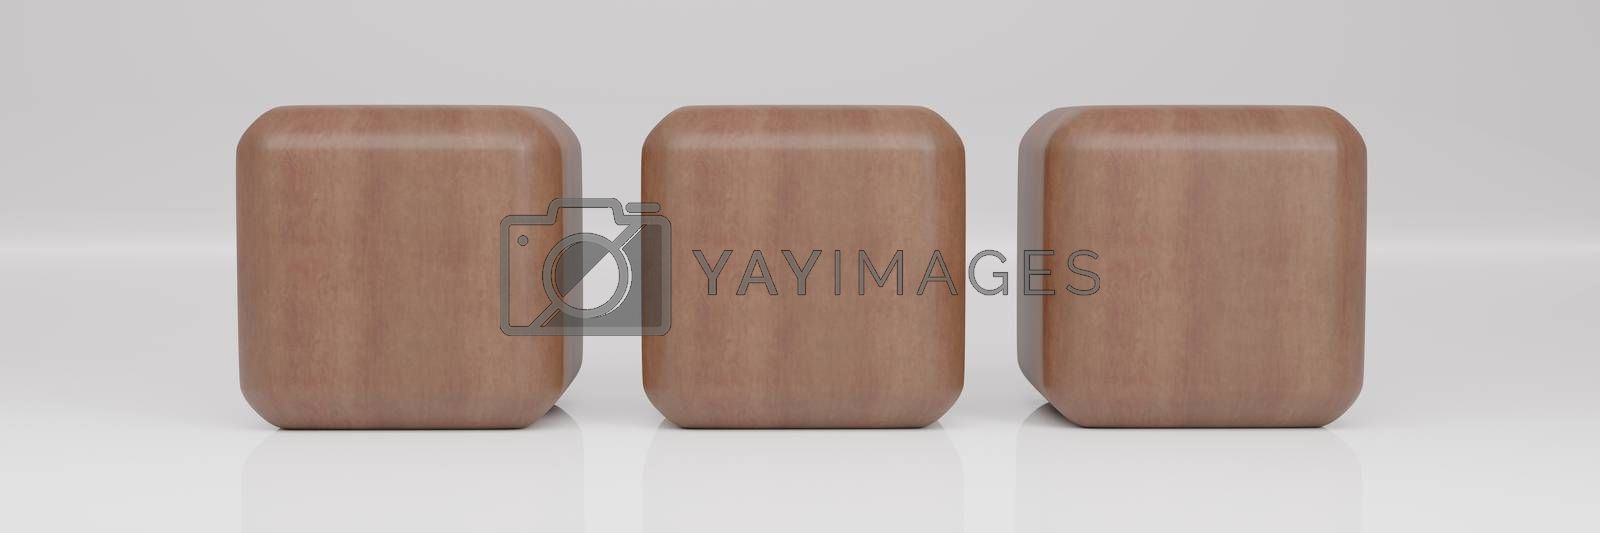 Wooden Rounded cube 3 Perspective on white background wiht Reflection. Geometric shape. 3D Rendering